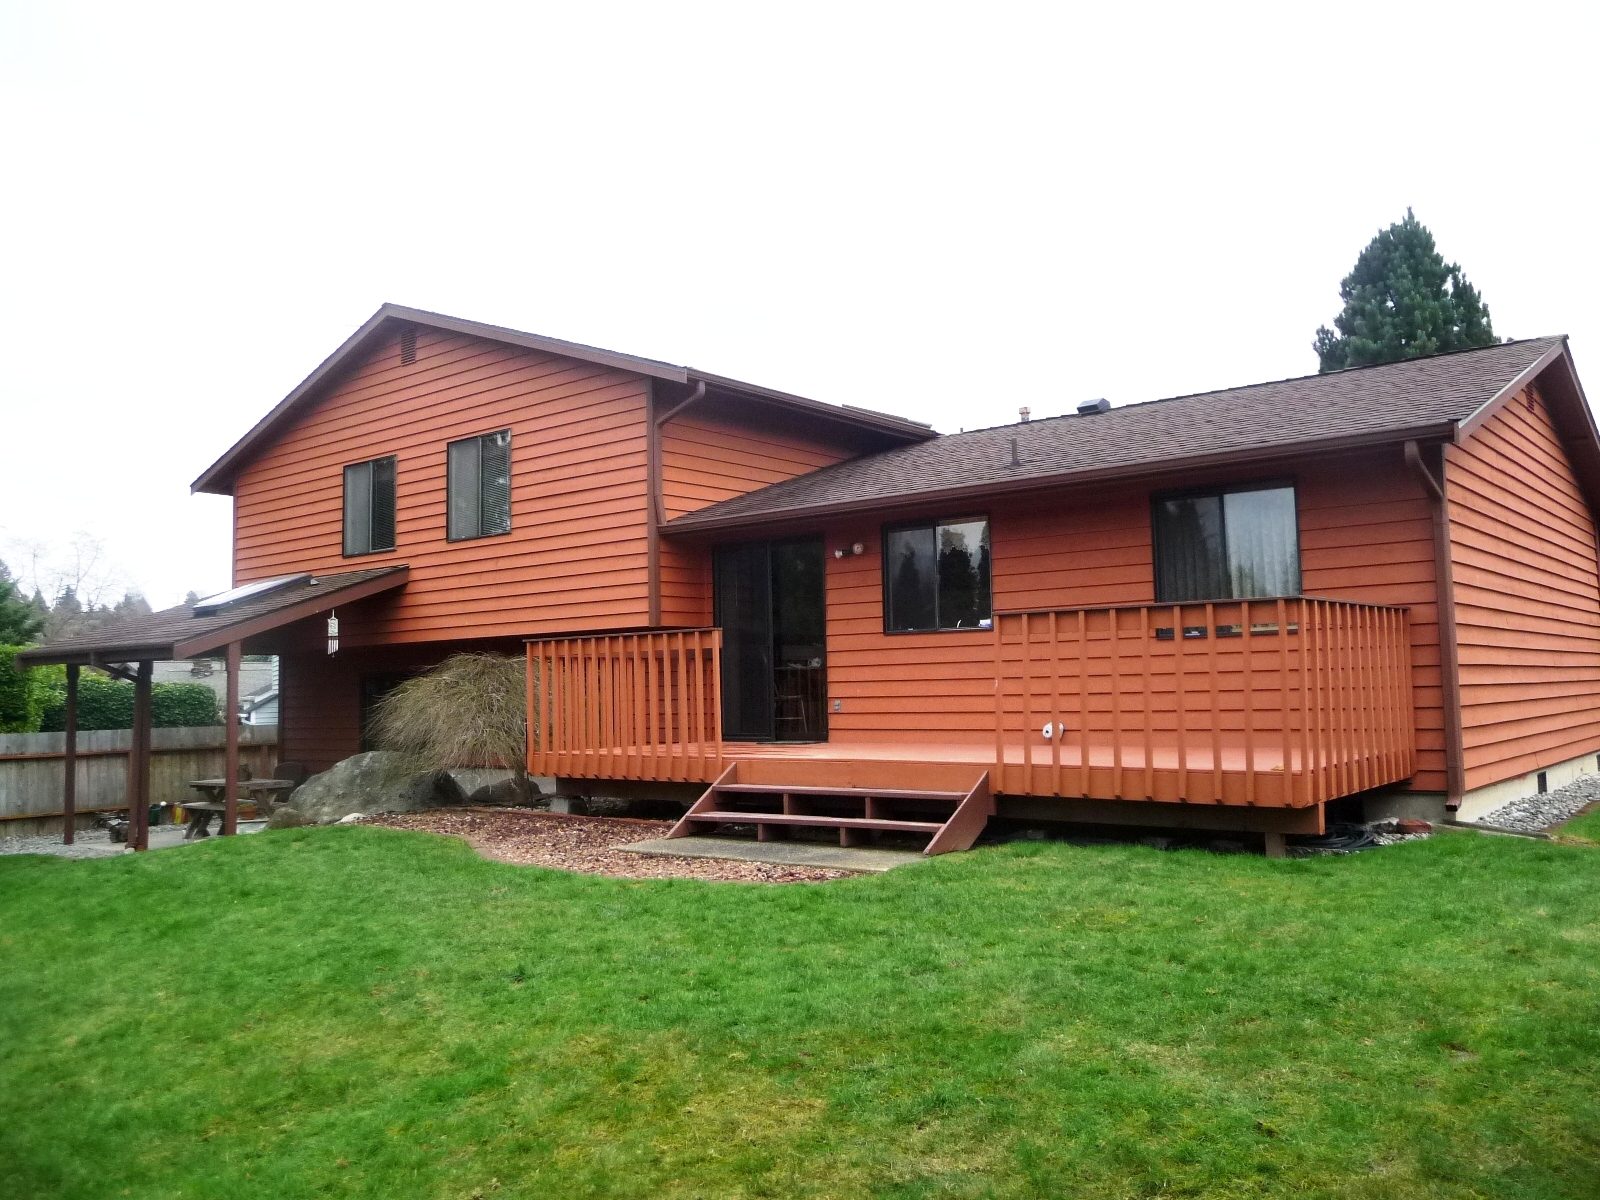 Des moines wa tri level home on culdesac for sale 4 bedrooms for Tri level house